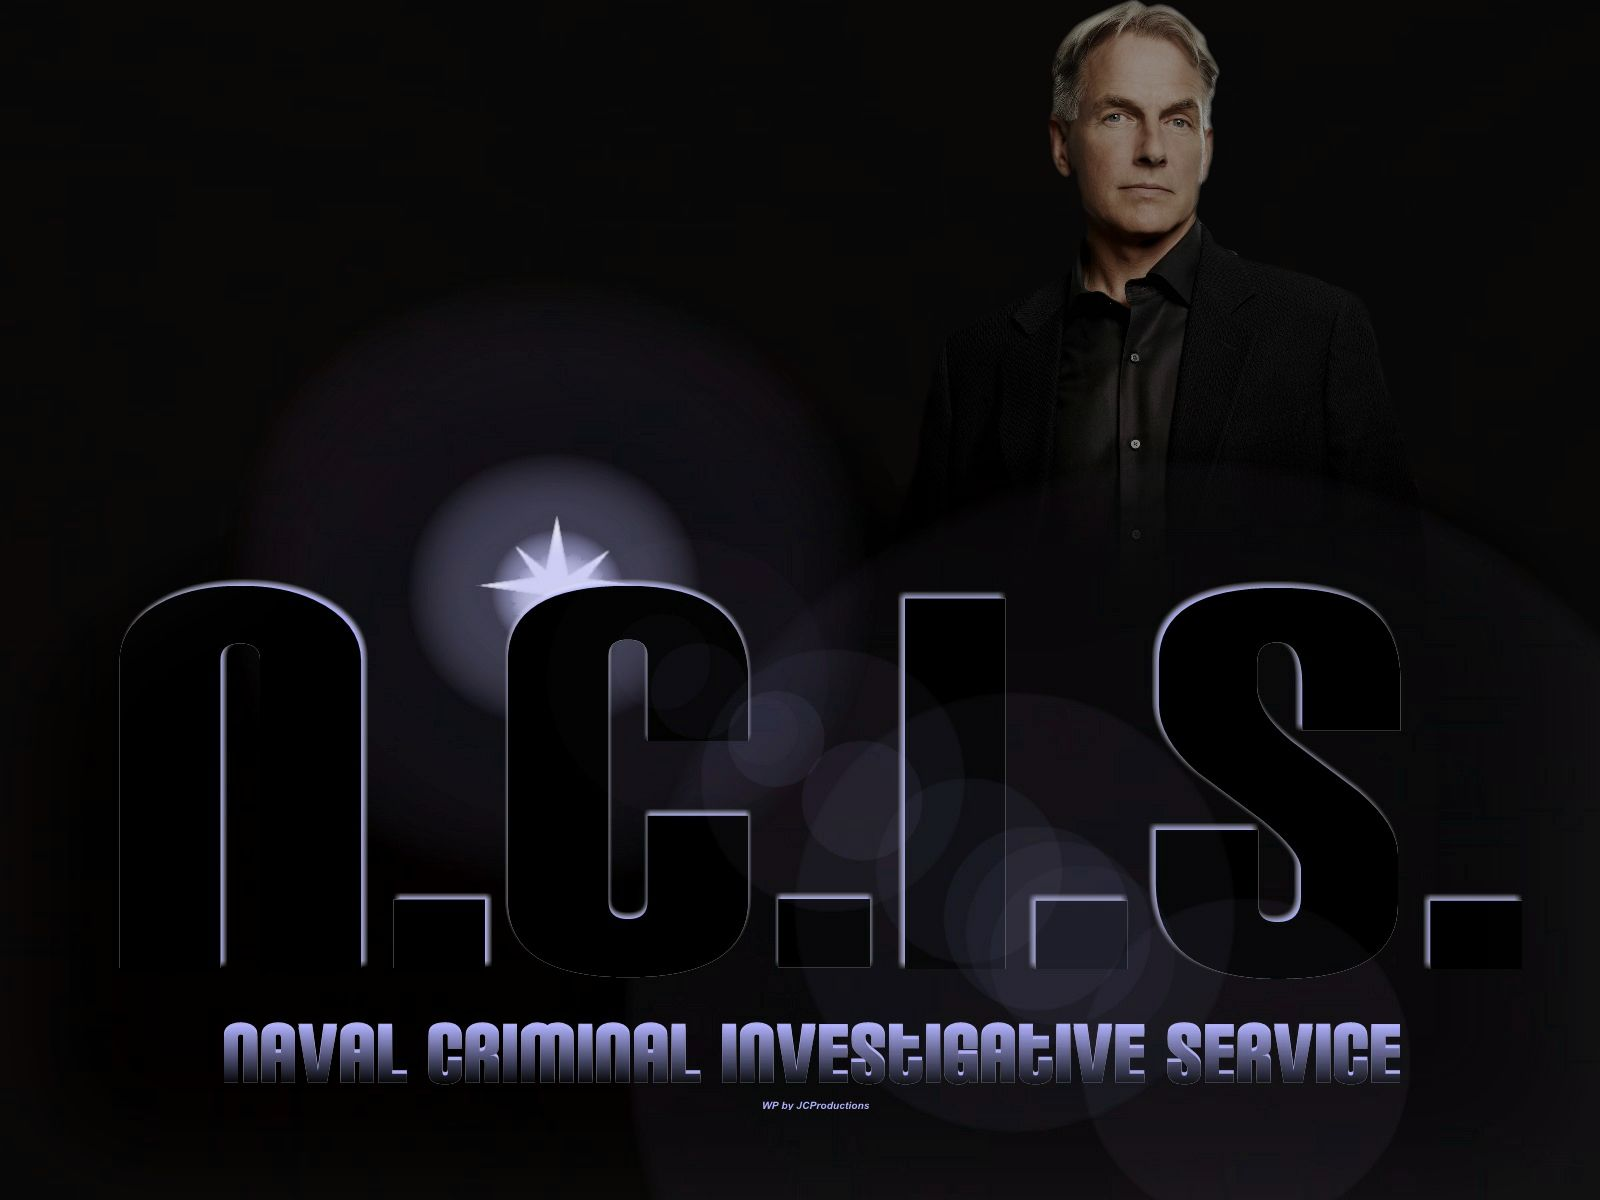 1600x1200 Gibbs Rules Wallpaper - Bing images | GIBBS - The Man, The Myth, The ...